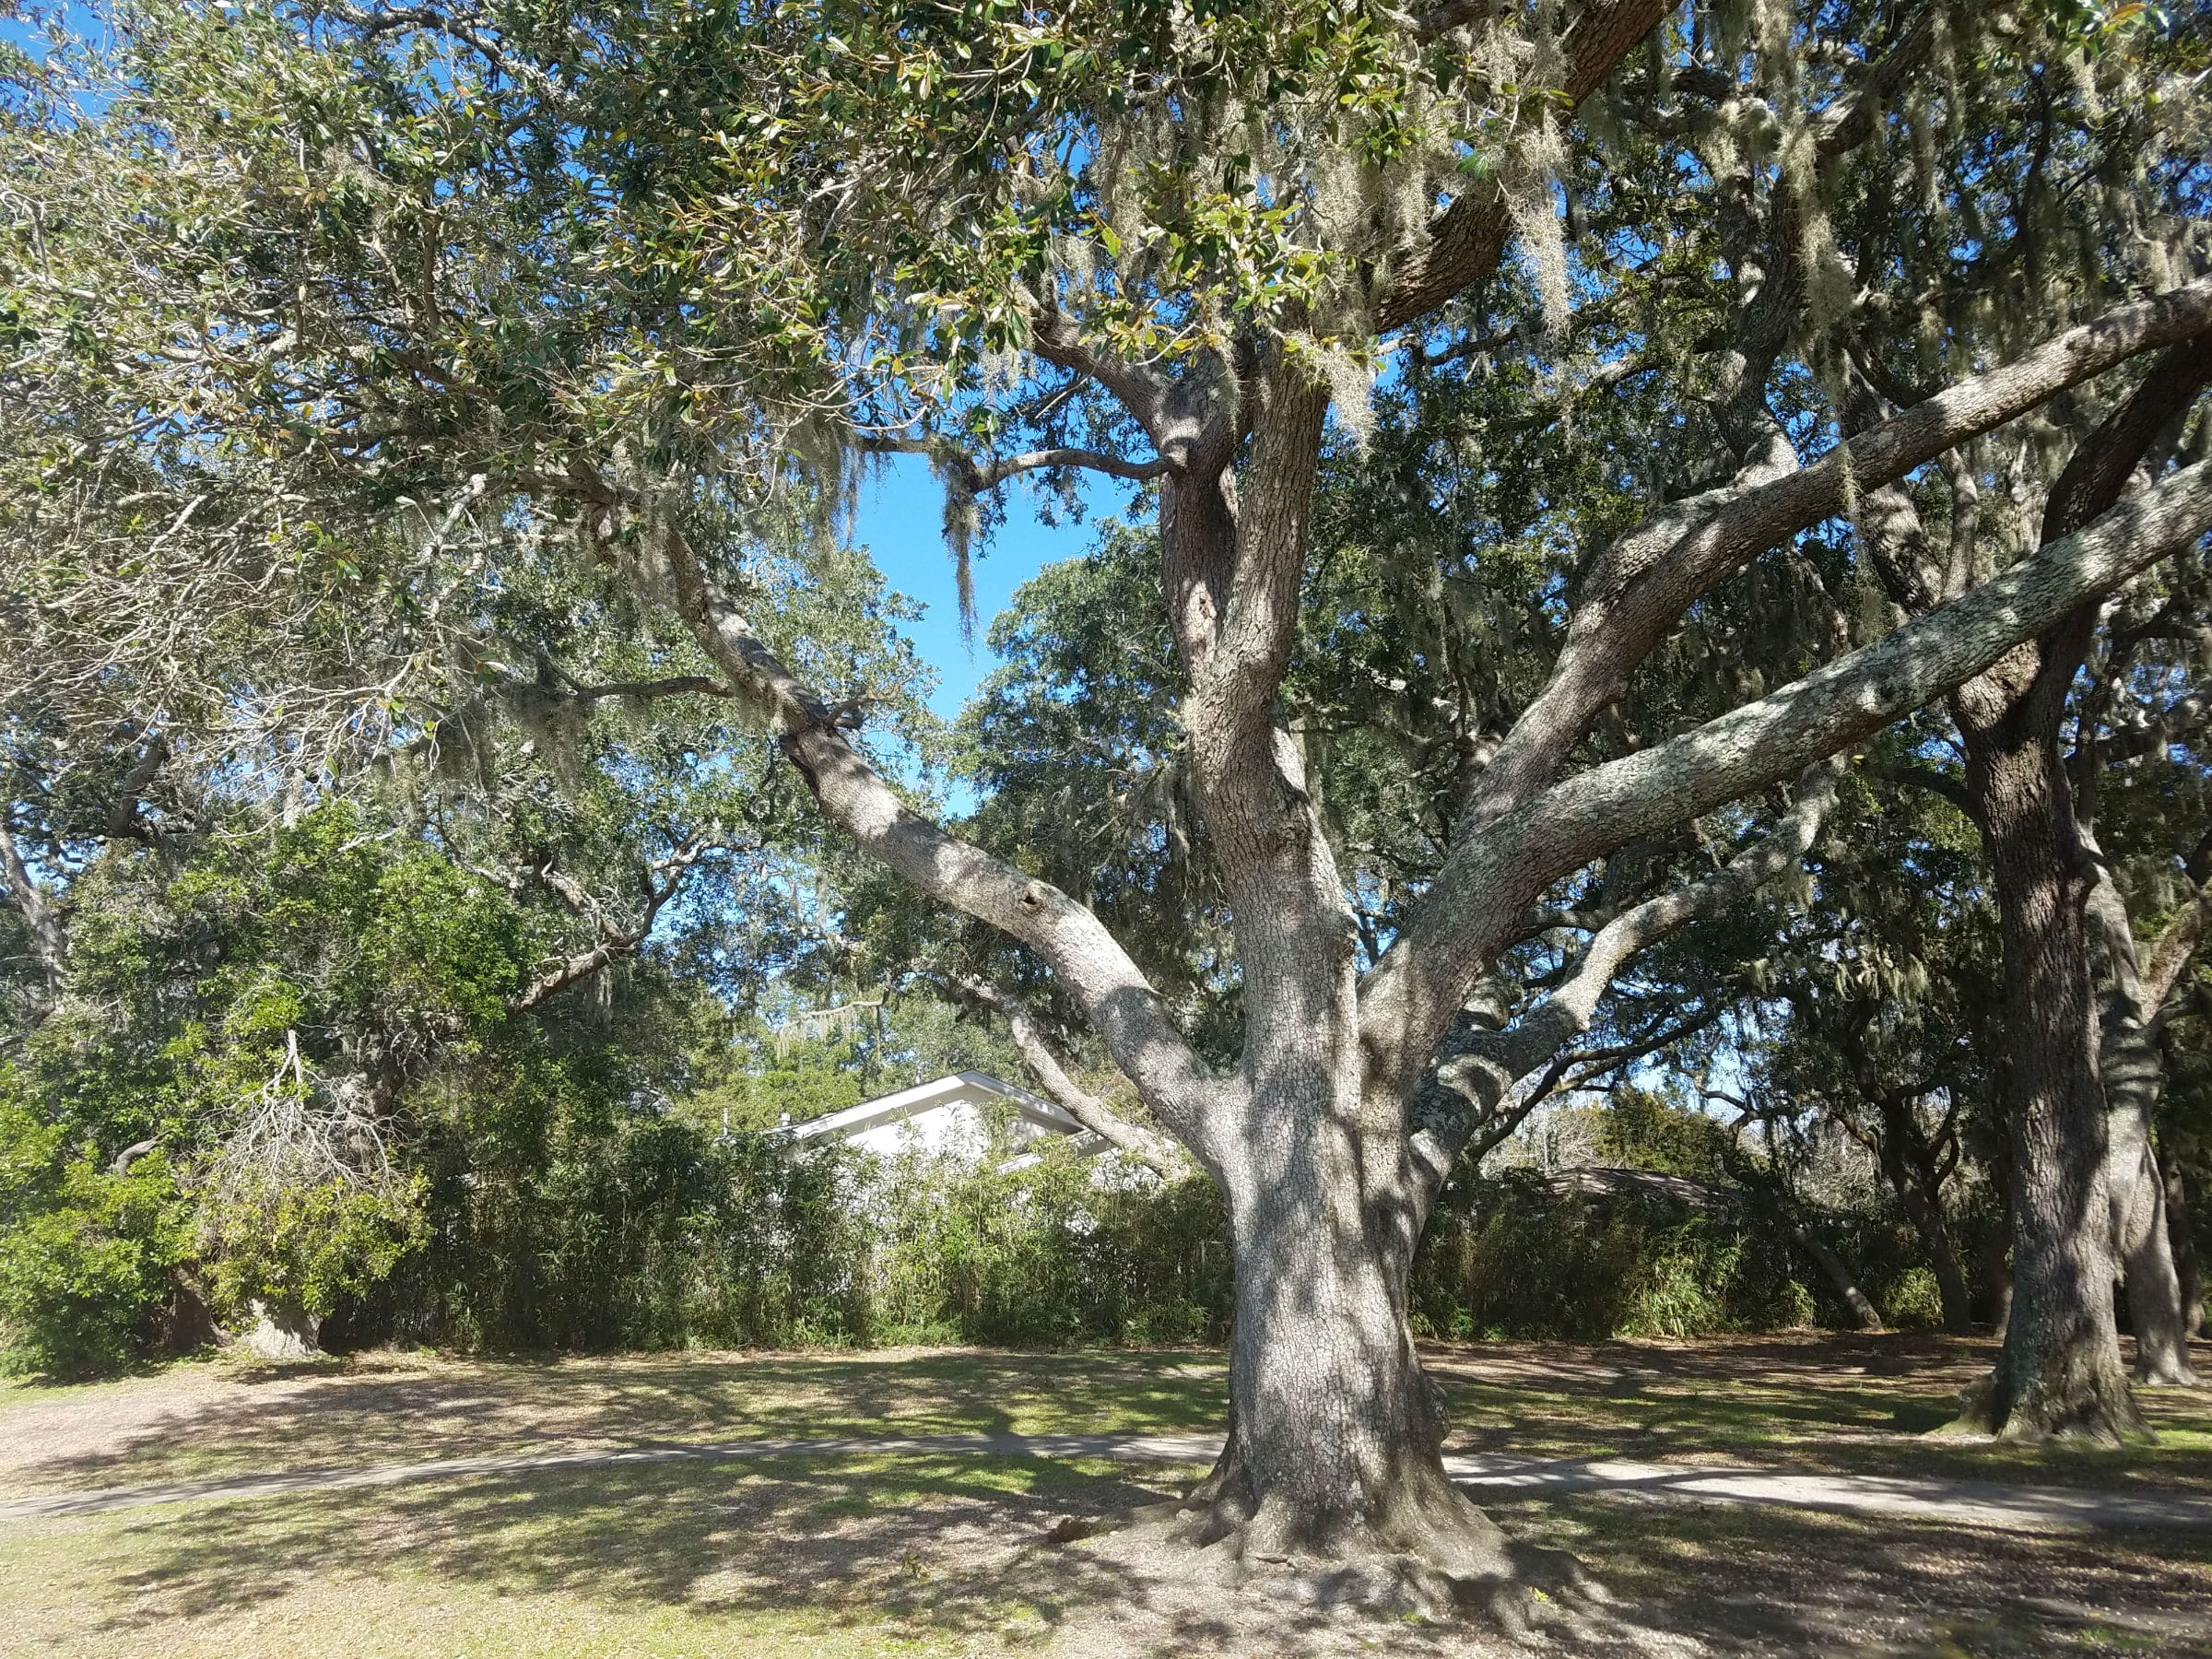 Southern Live Oak-Fort Walton Beach Florida-04